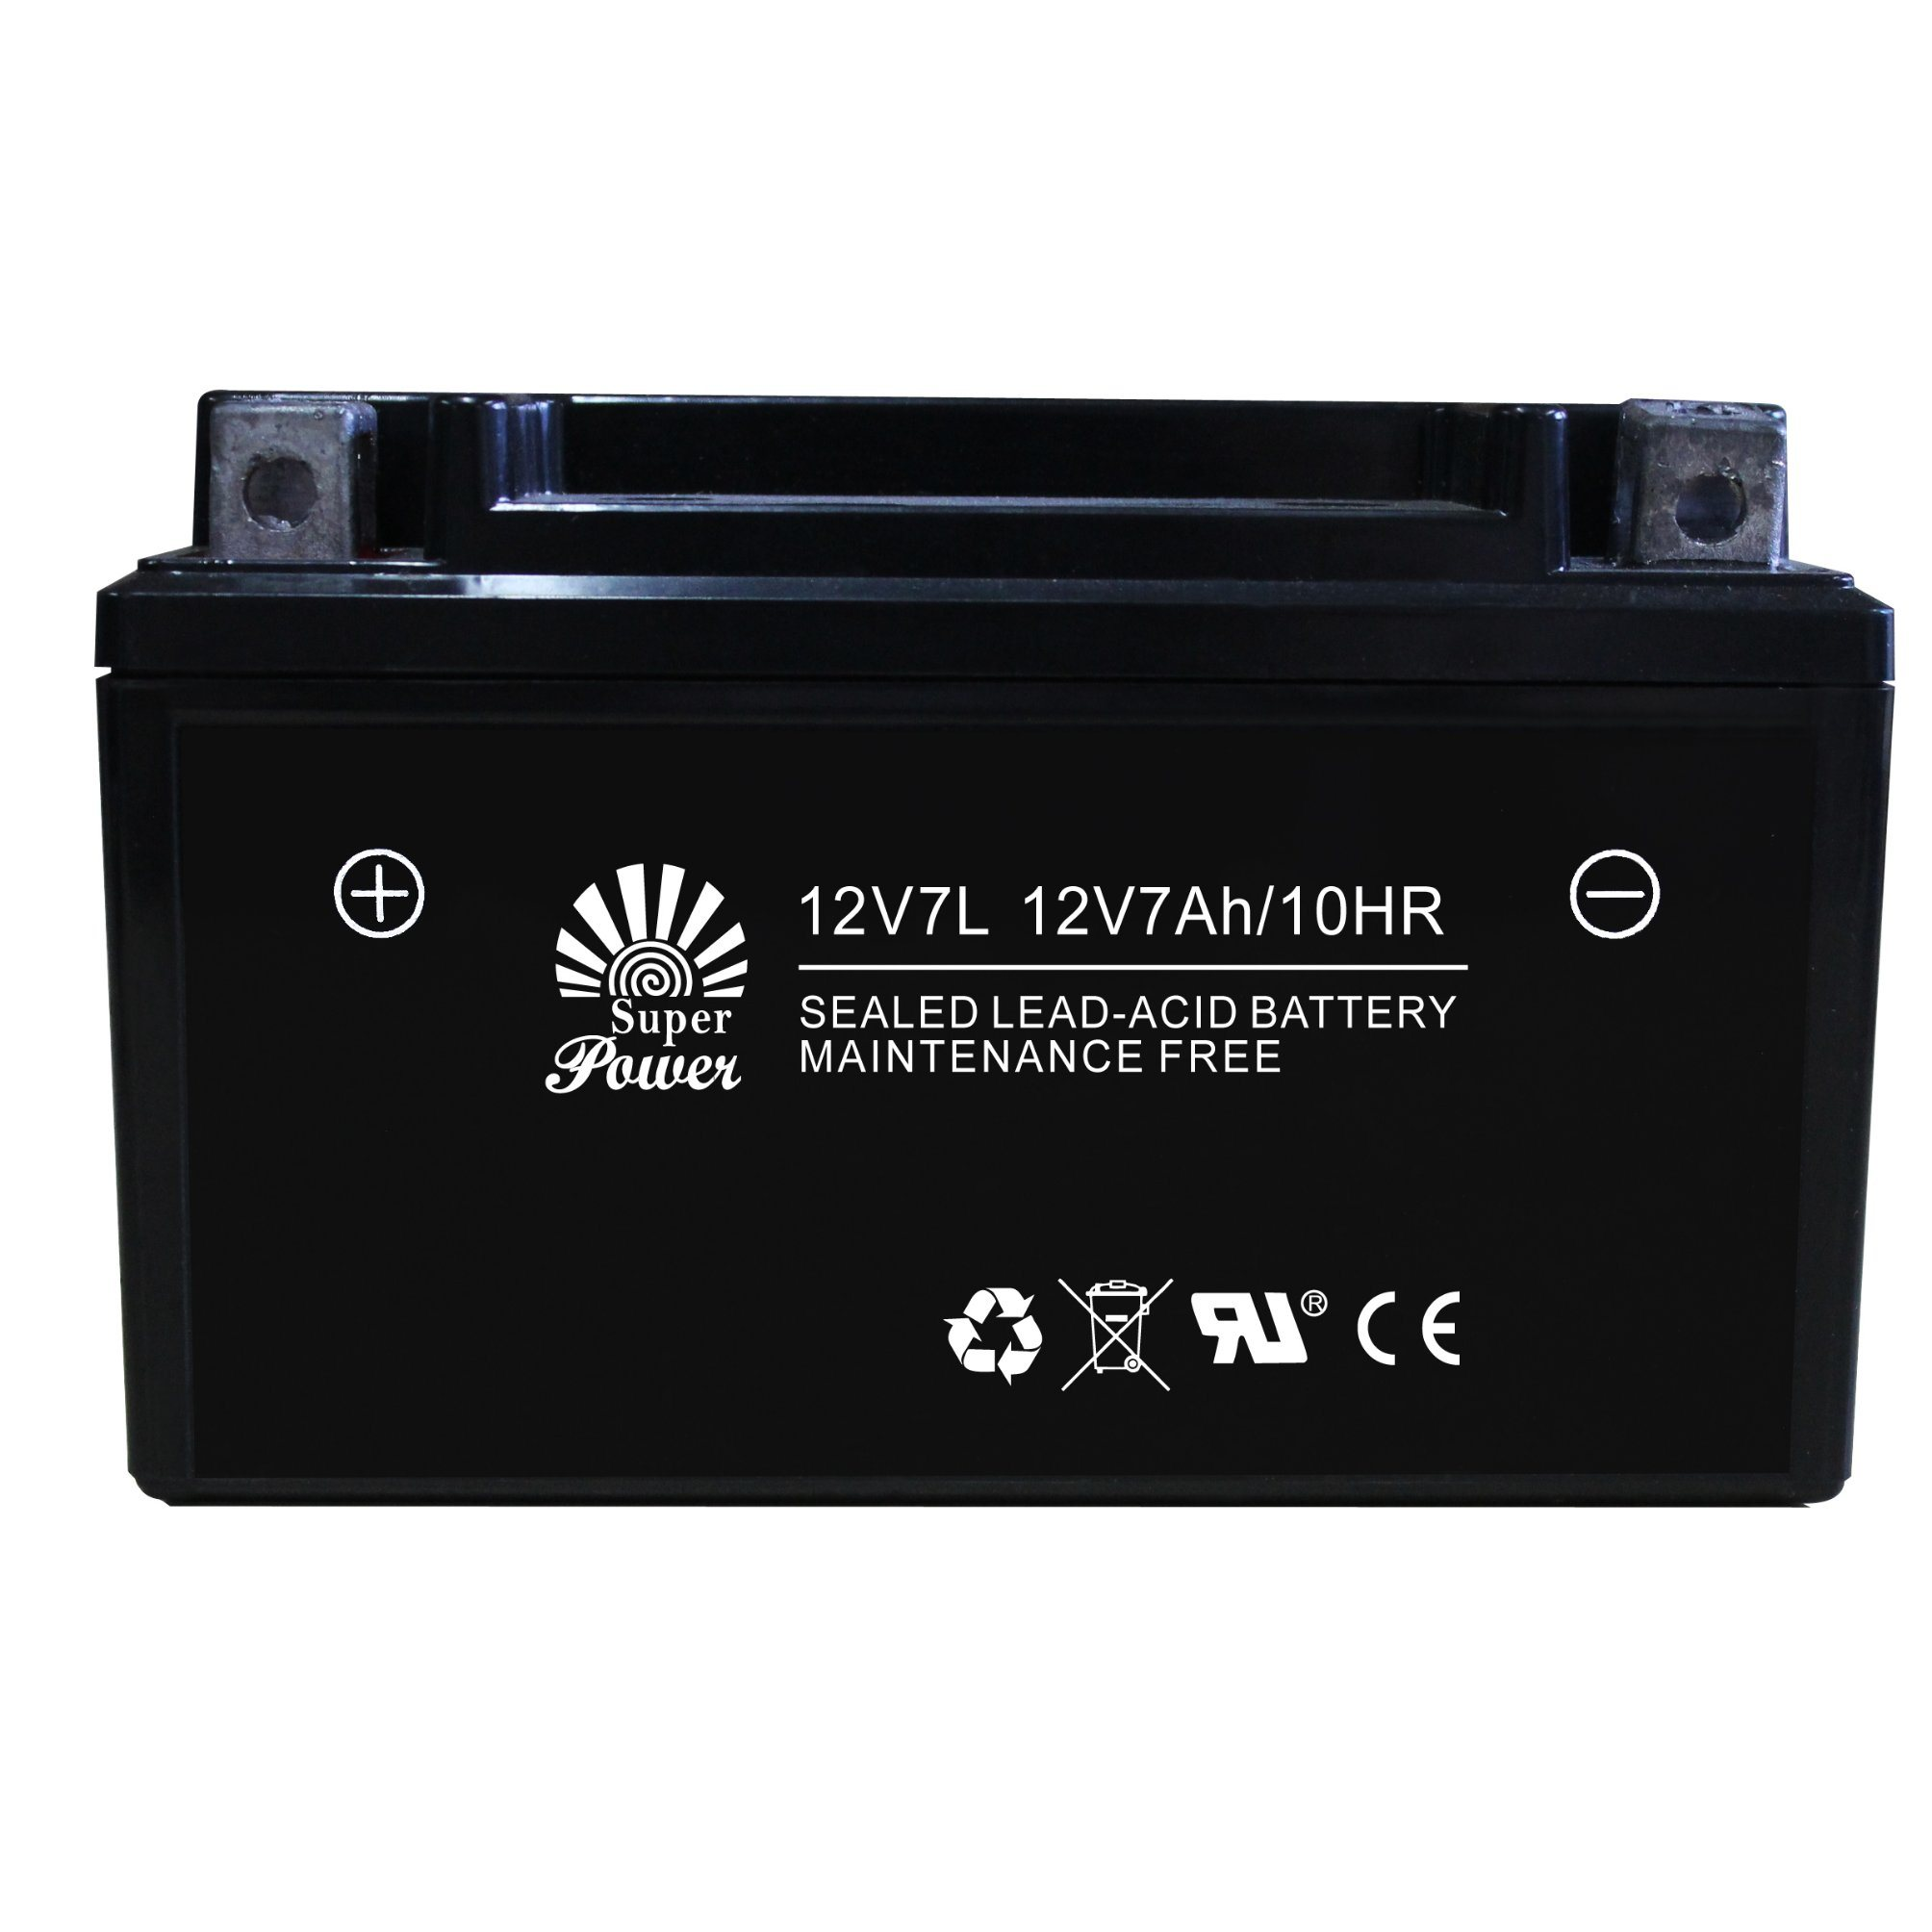 Starting Motorcycle Battery 12V 7ah VRLA Serial (12V7L) with Capacity 7ah and Voltage 12V